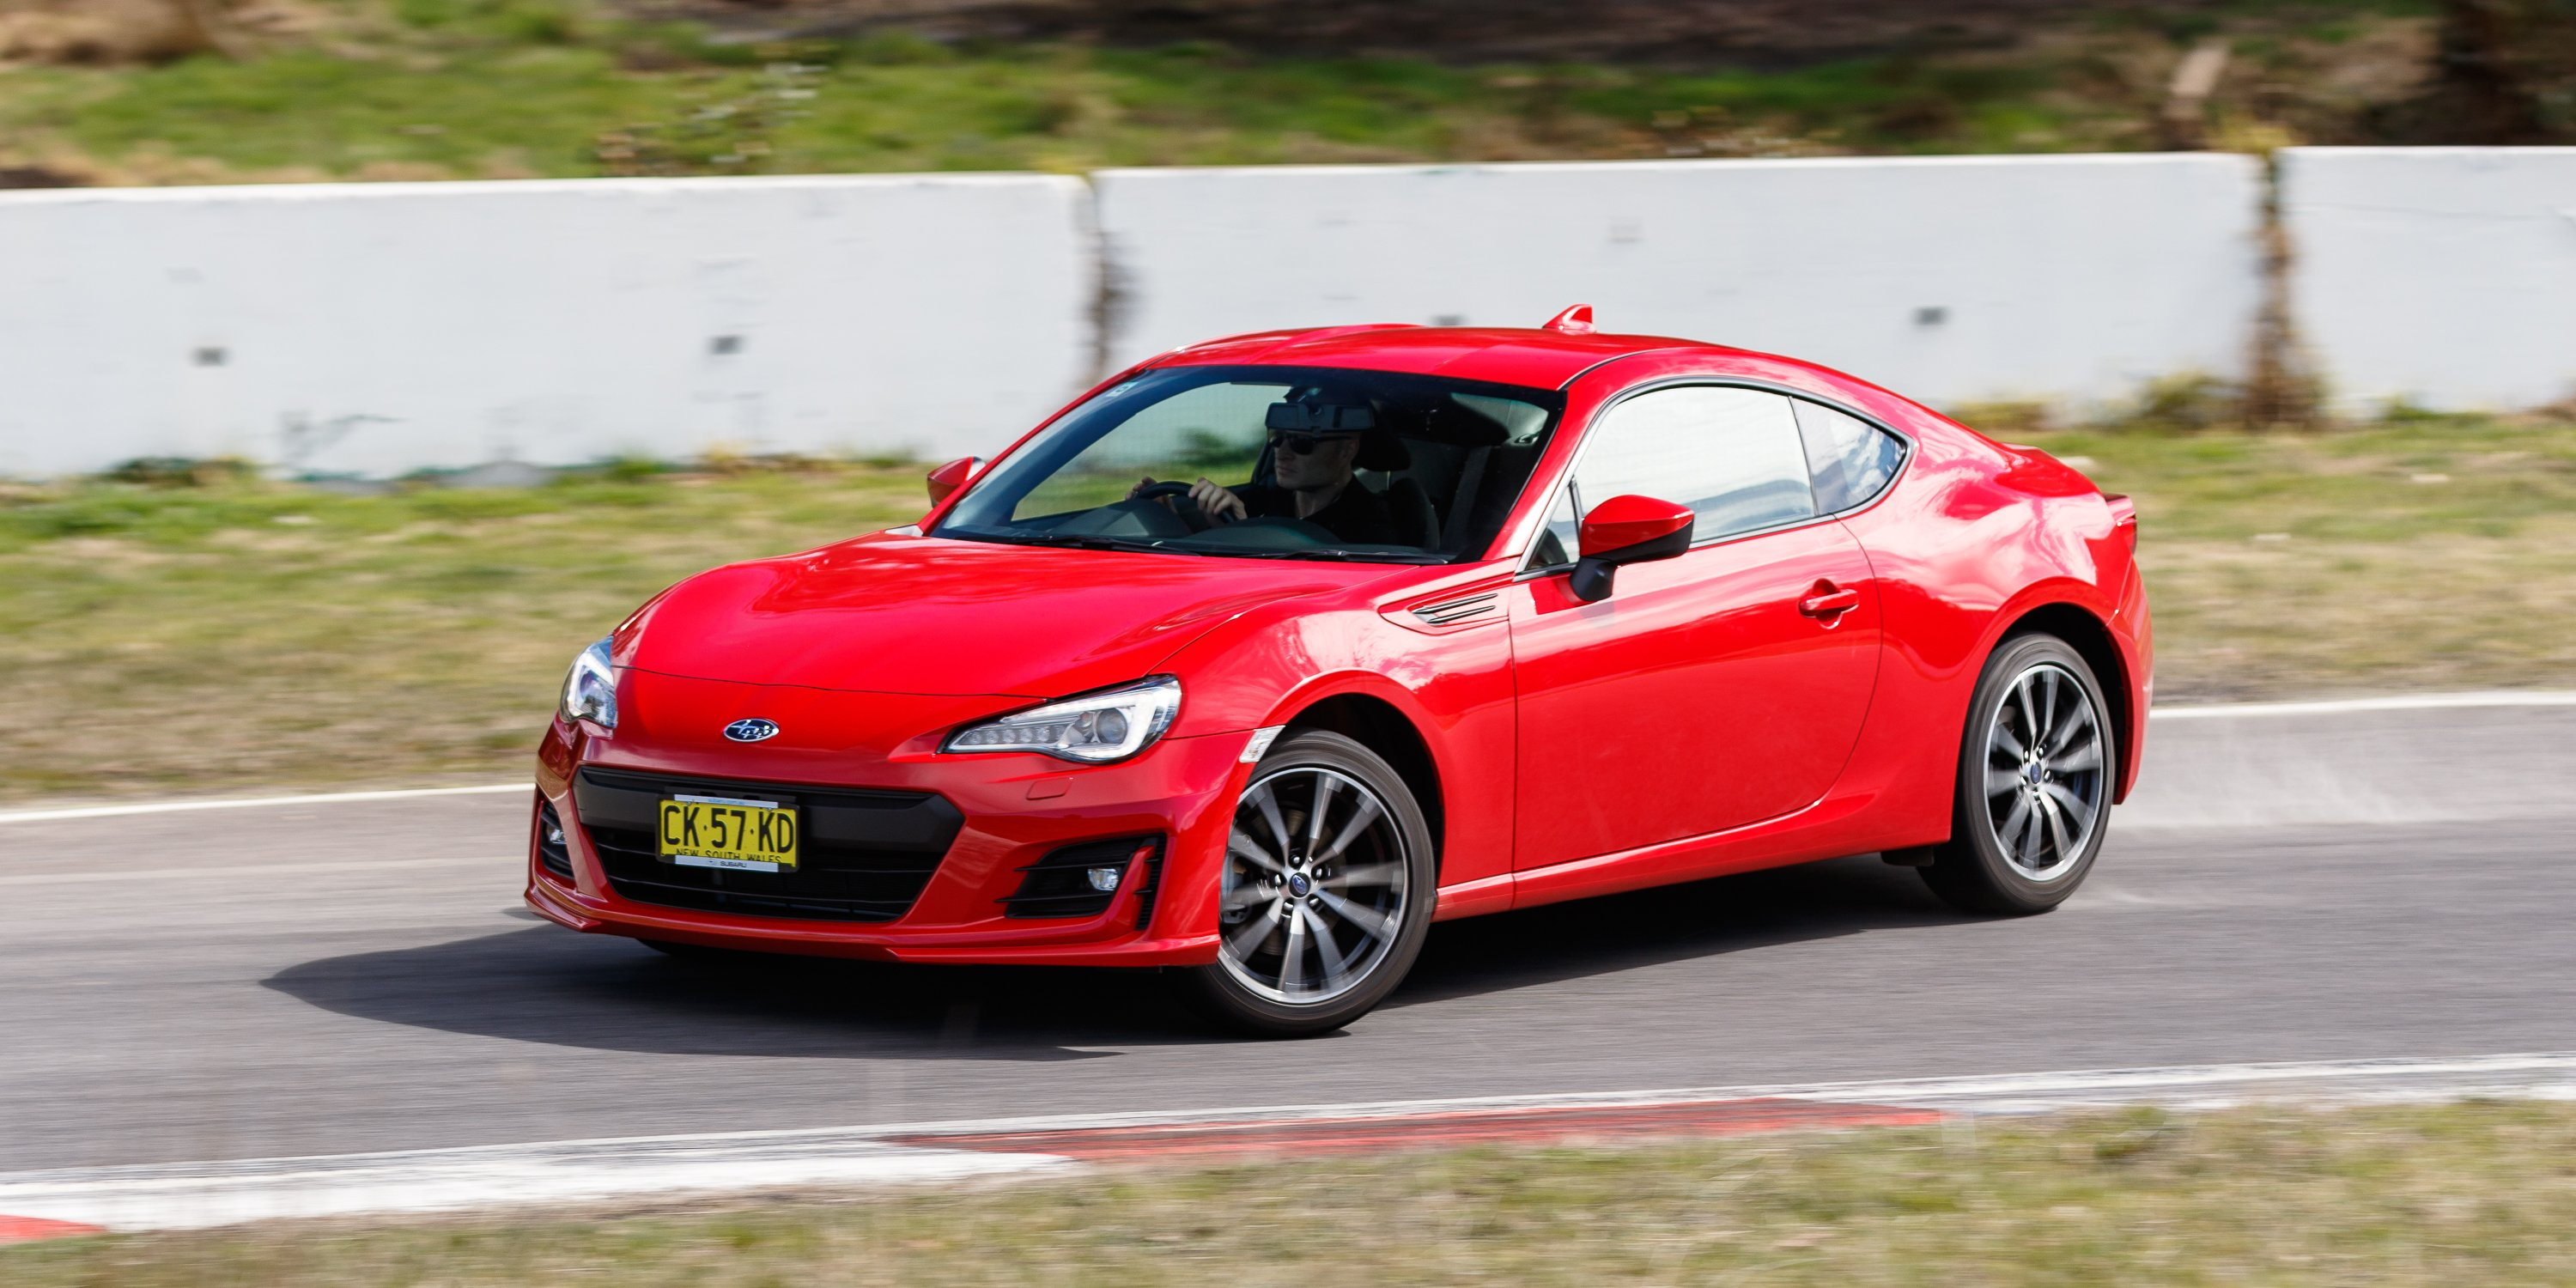 2017 subaru brz v toyota 86 gt comparison photos 1 of 119. Black Bedroom Furniture Sets. Home Design Ideas